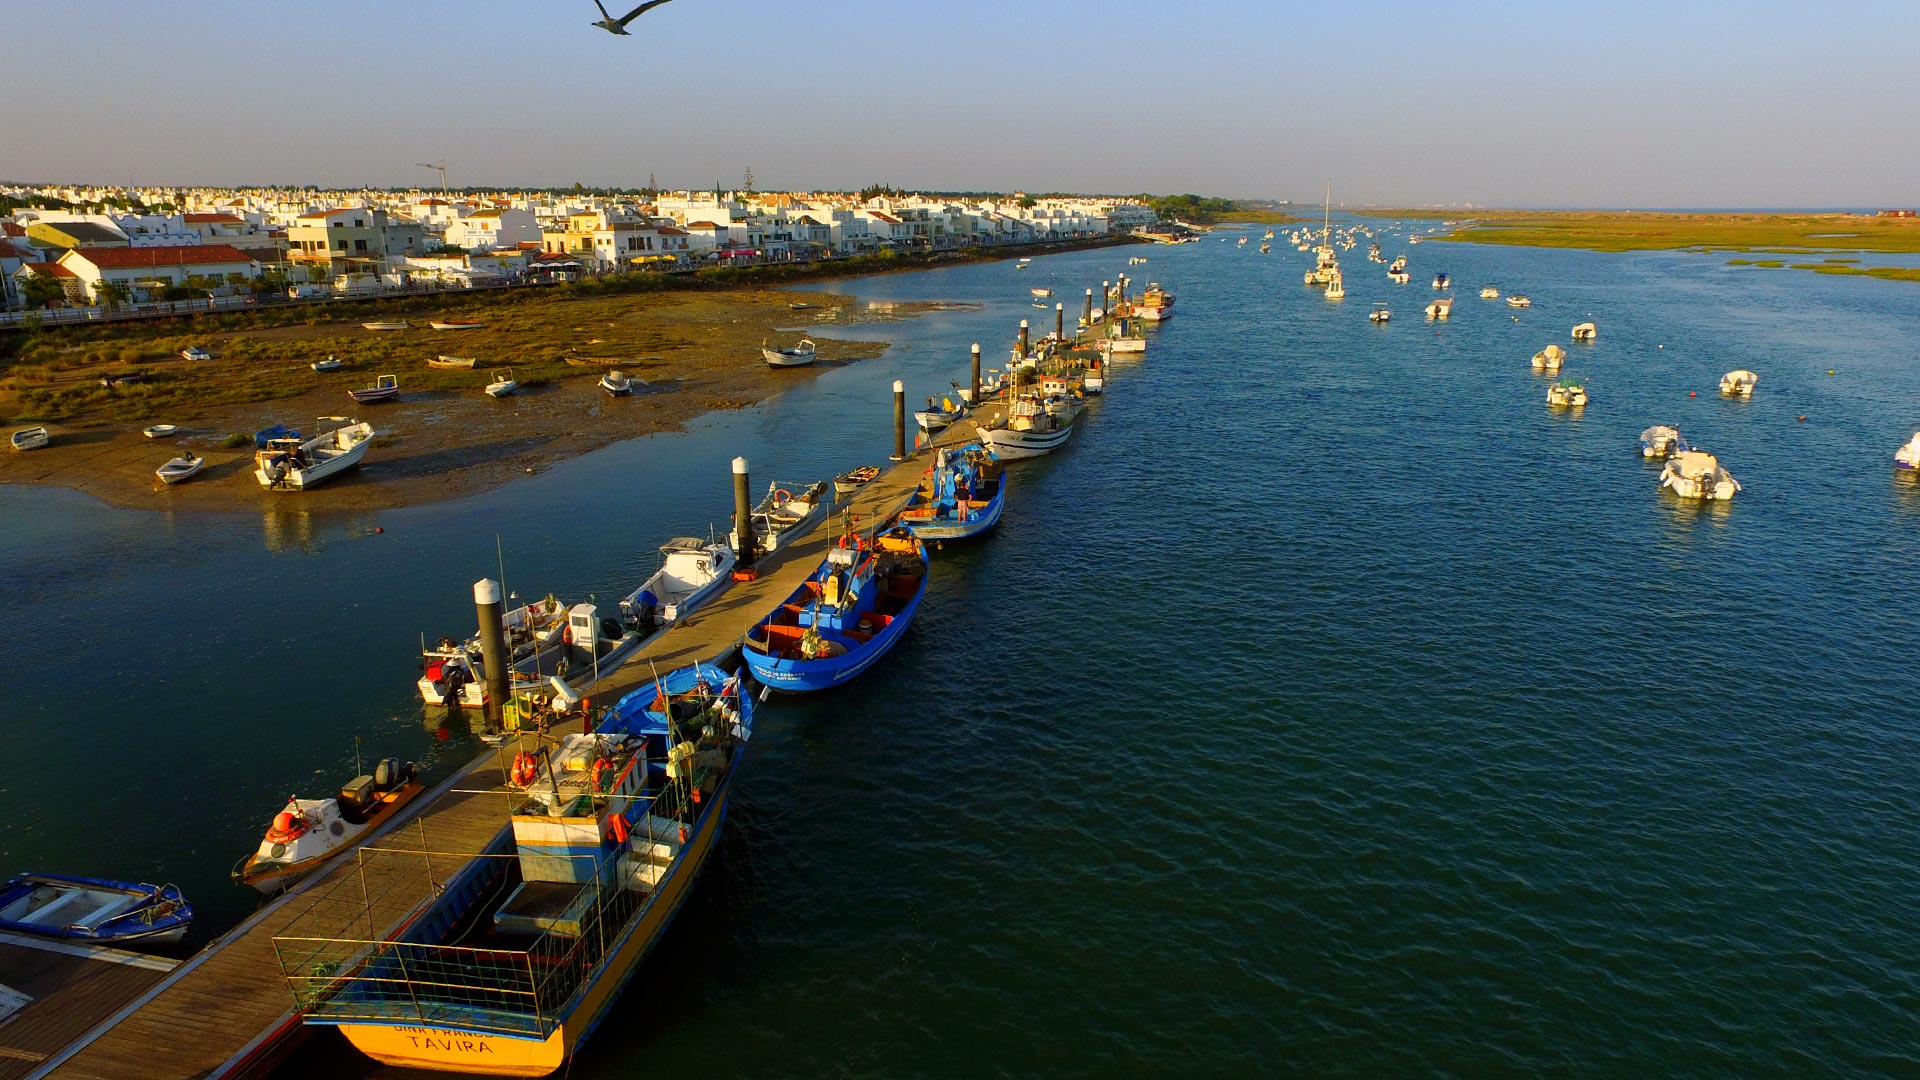 Cabanas de Tavira - Fishing boats by the sunset